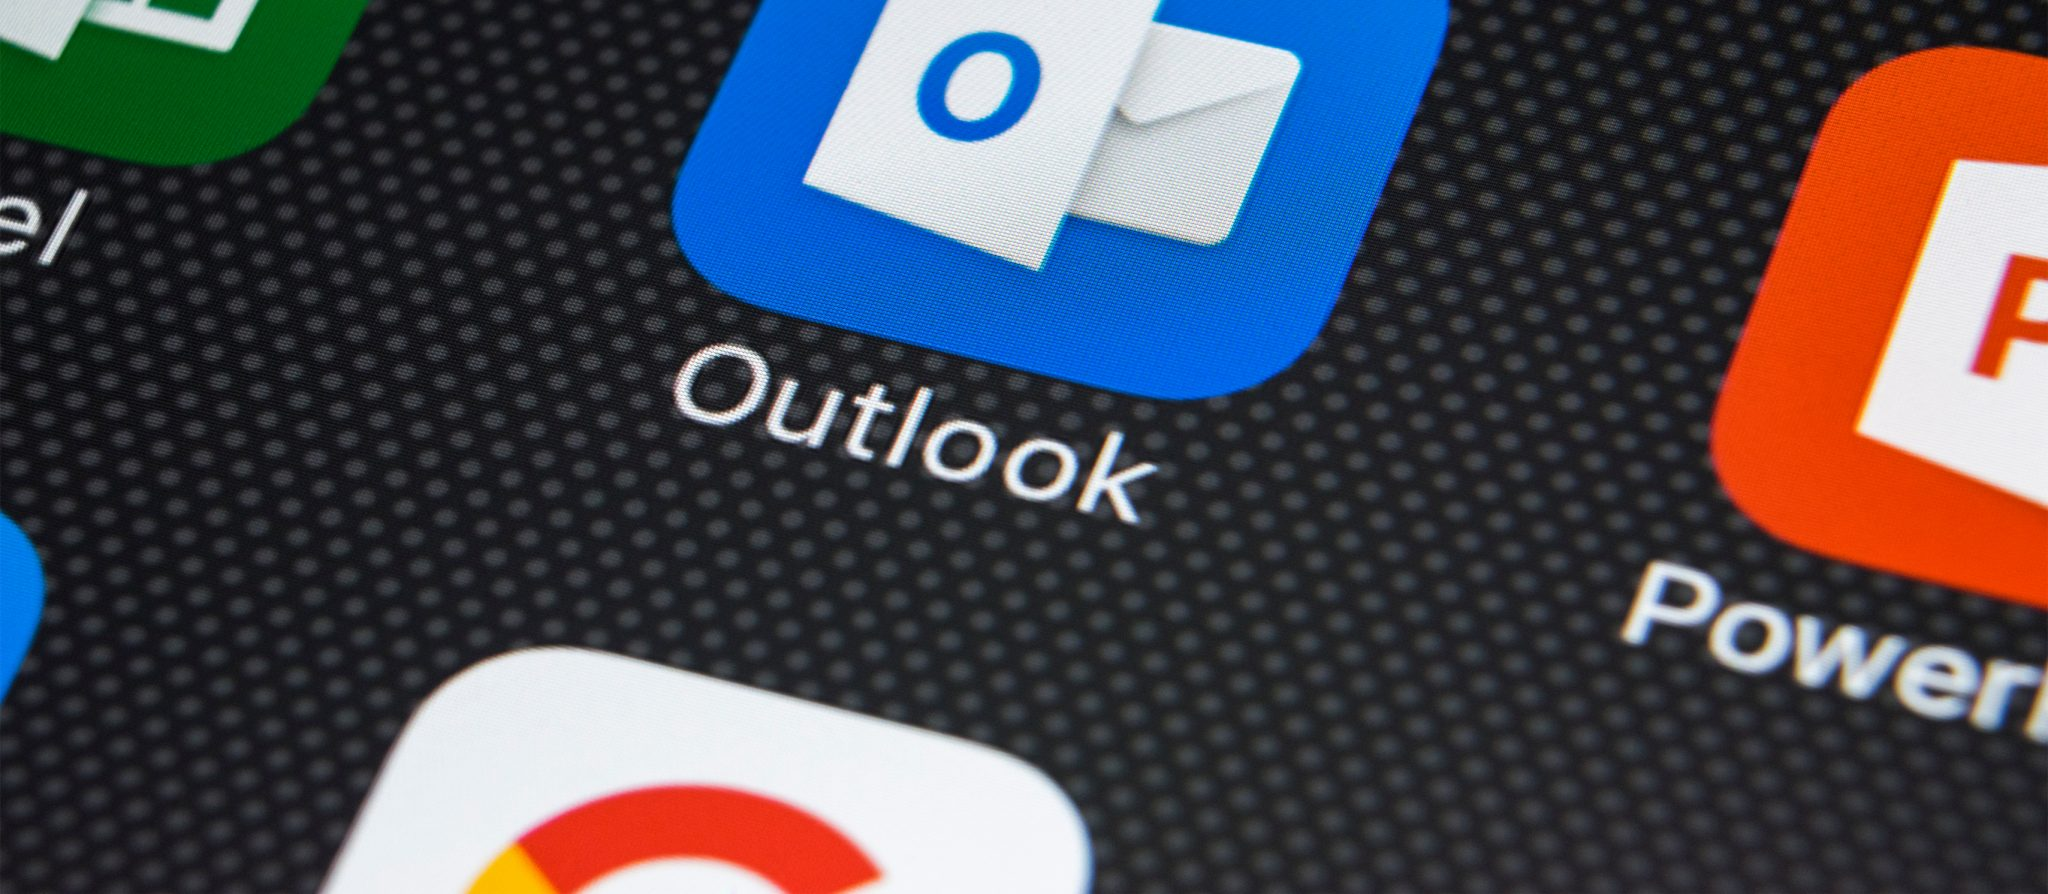 HOW TO: Ways to fix Outlook error 'cannot open your default email